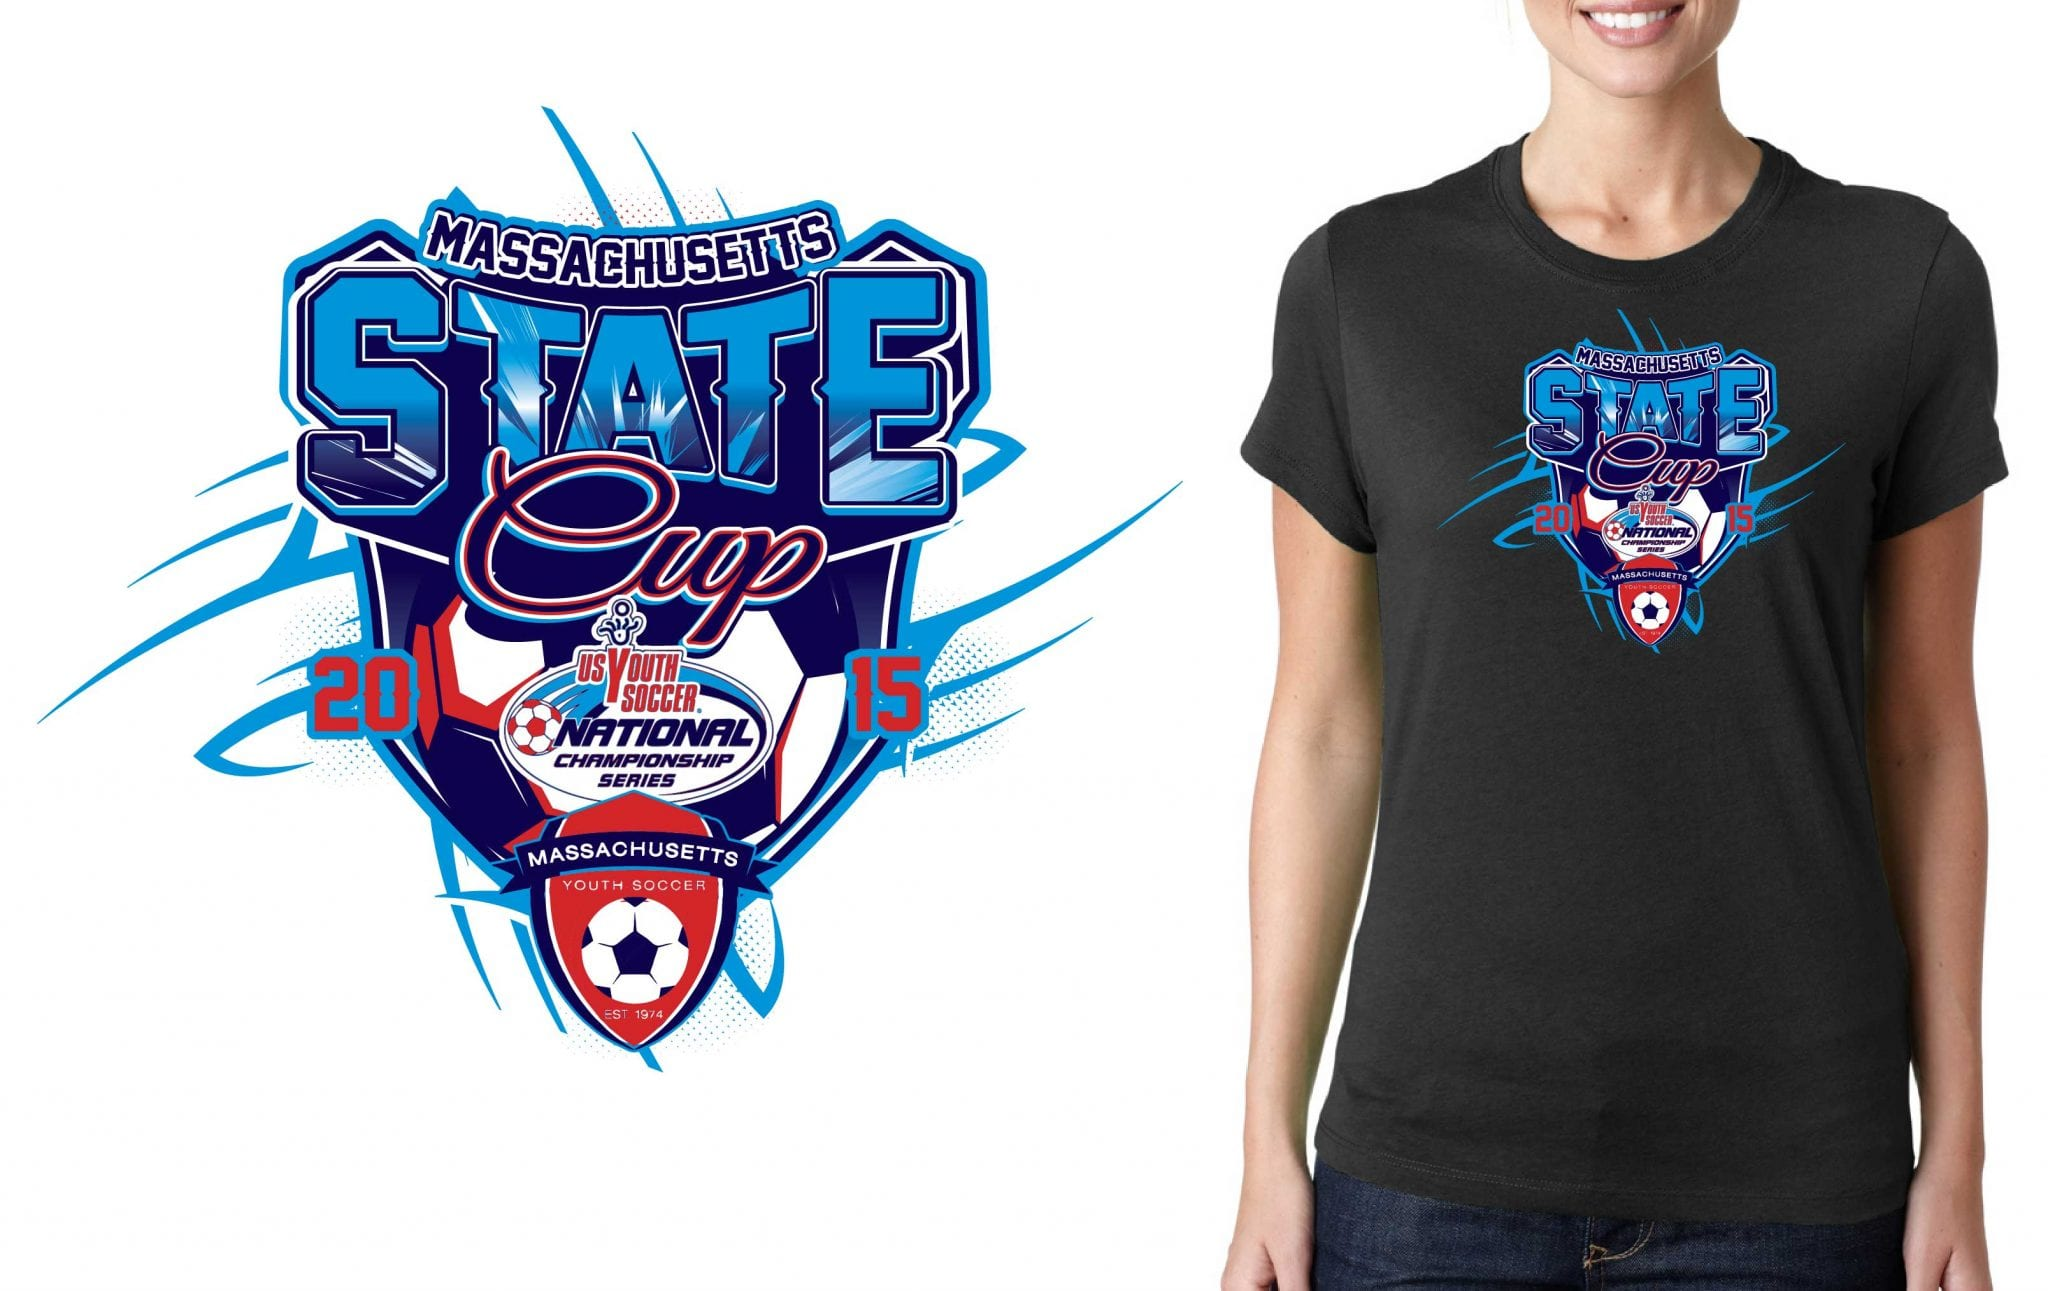 2015 Massachusetts State Cup PRINT READY